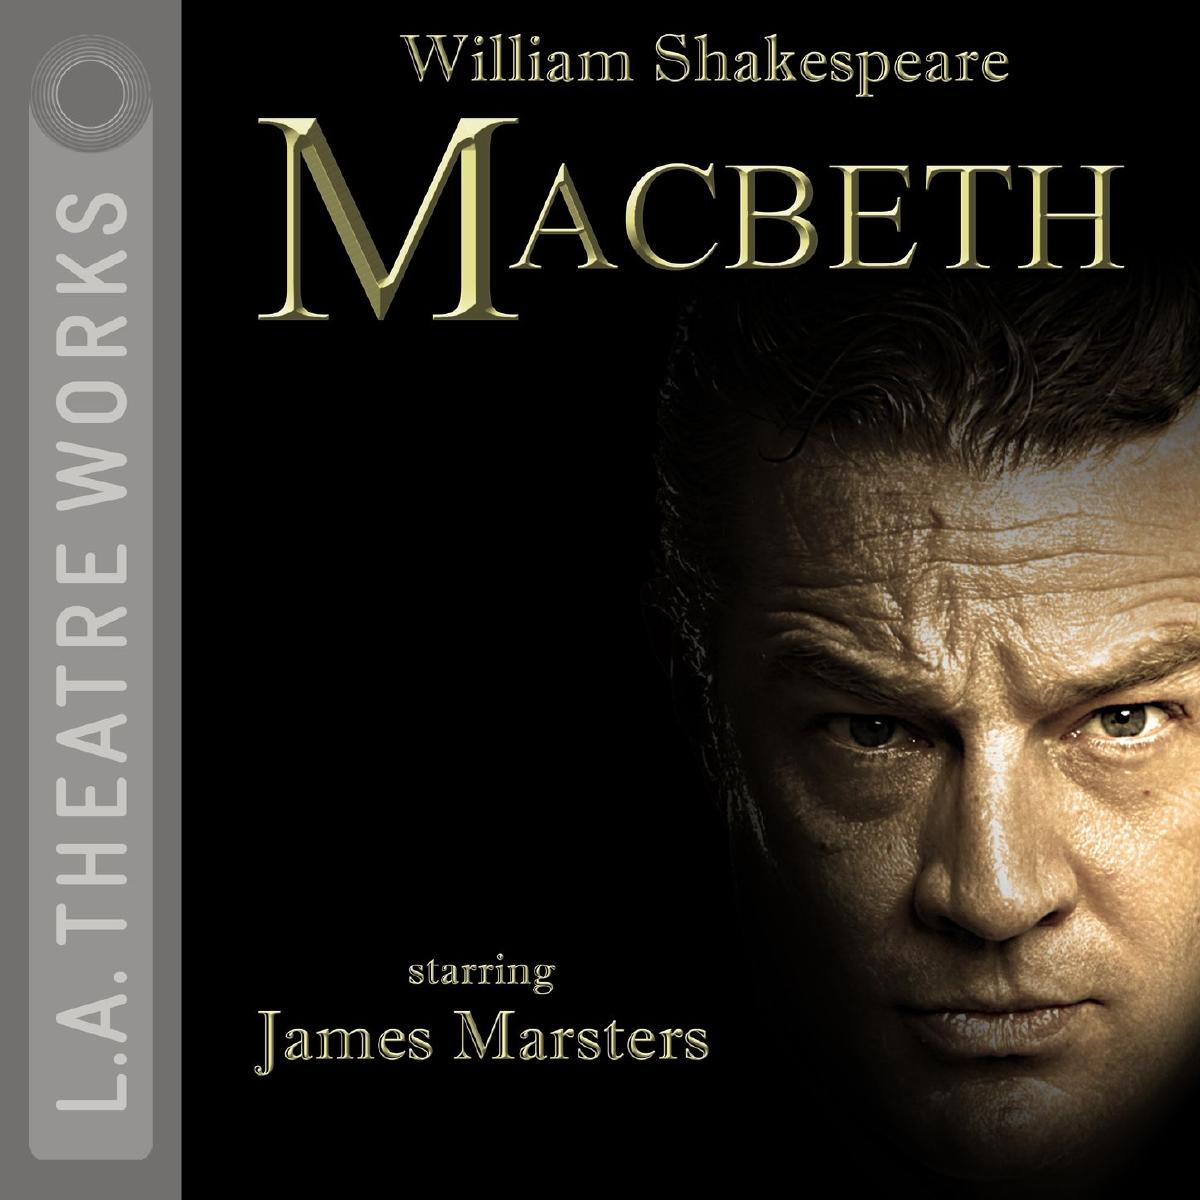 how william shakespeare differentiated macbeth and lady macbeth